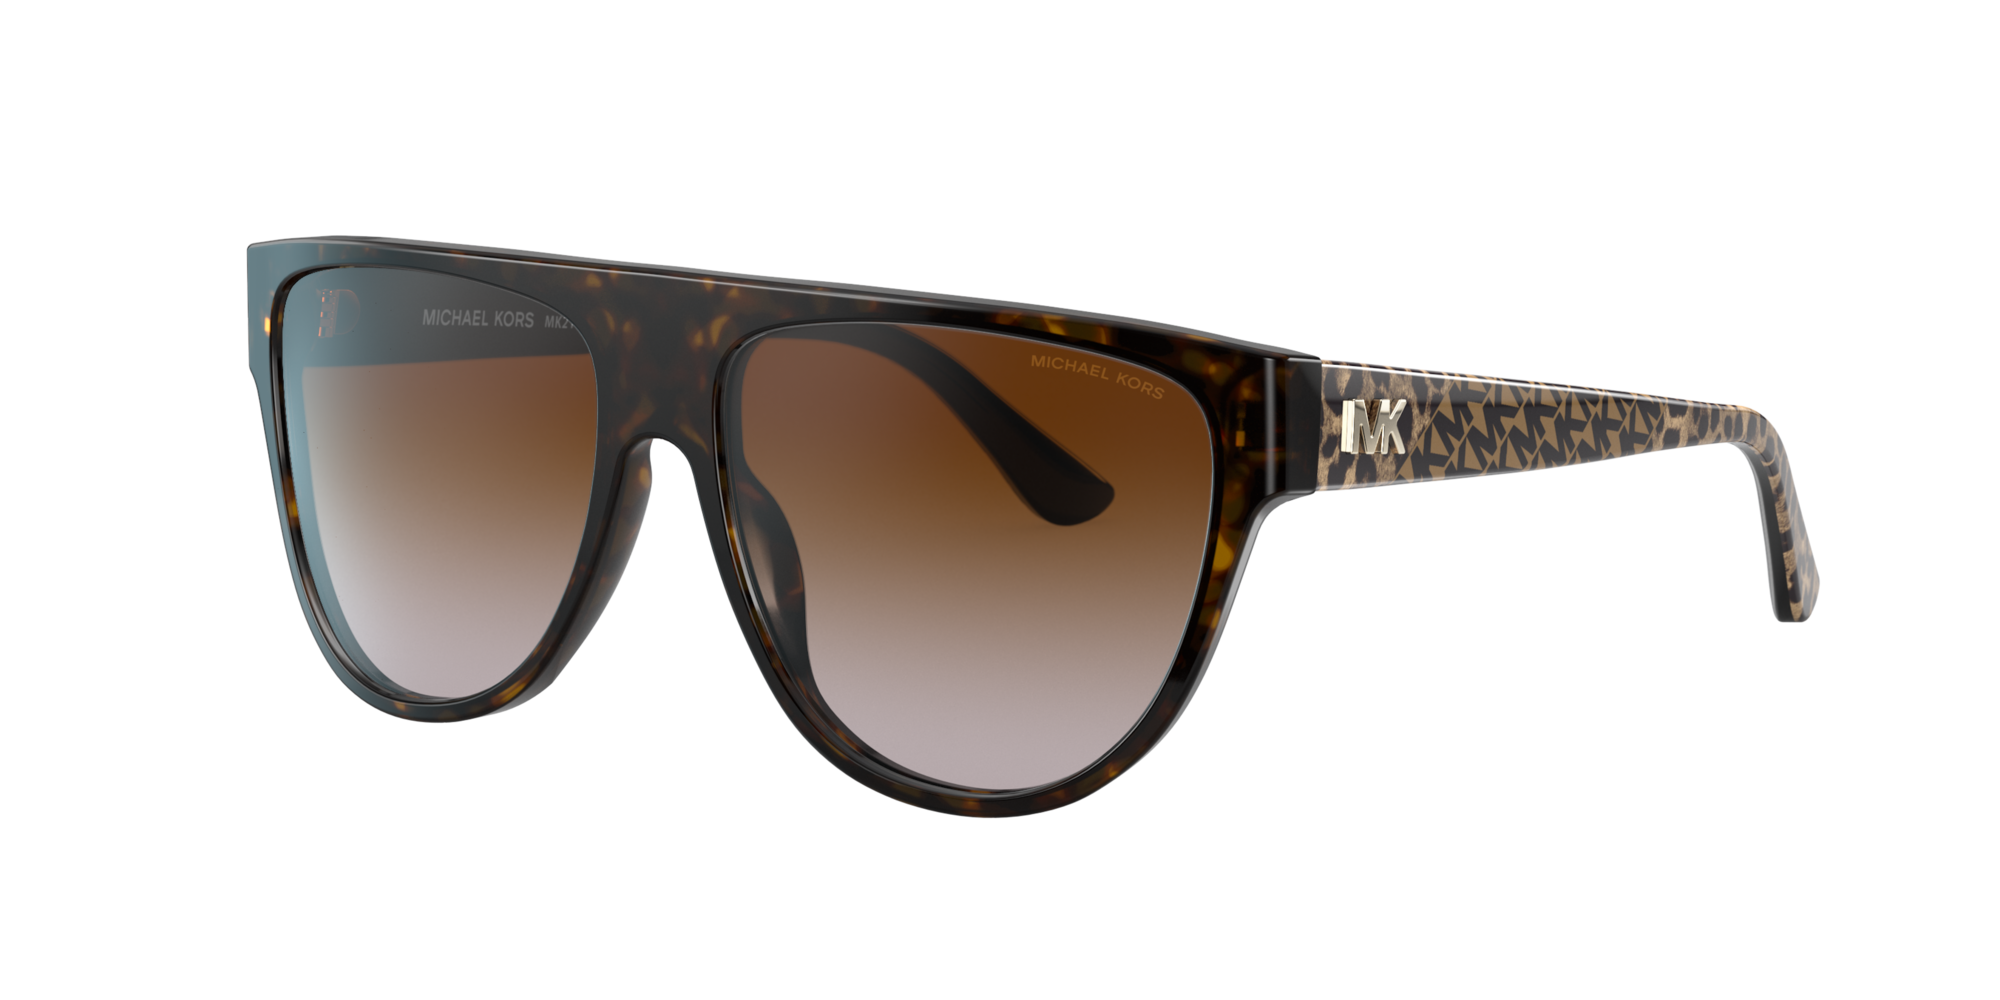 Michael Kors Unisex  MK2111 Barrow -  Frame color: Habana, Lens color: Degradadas marron